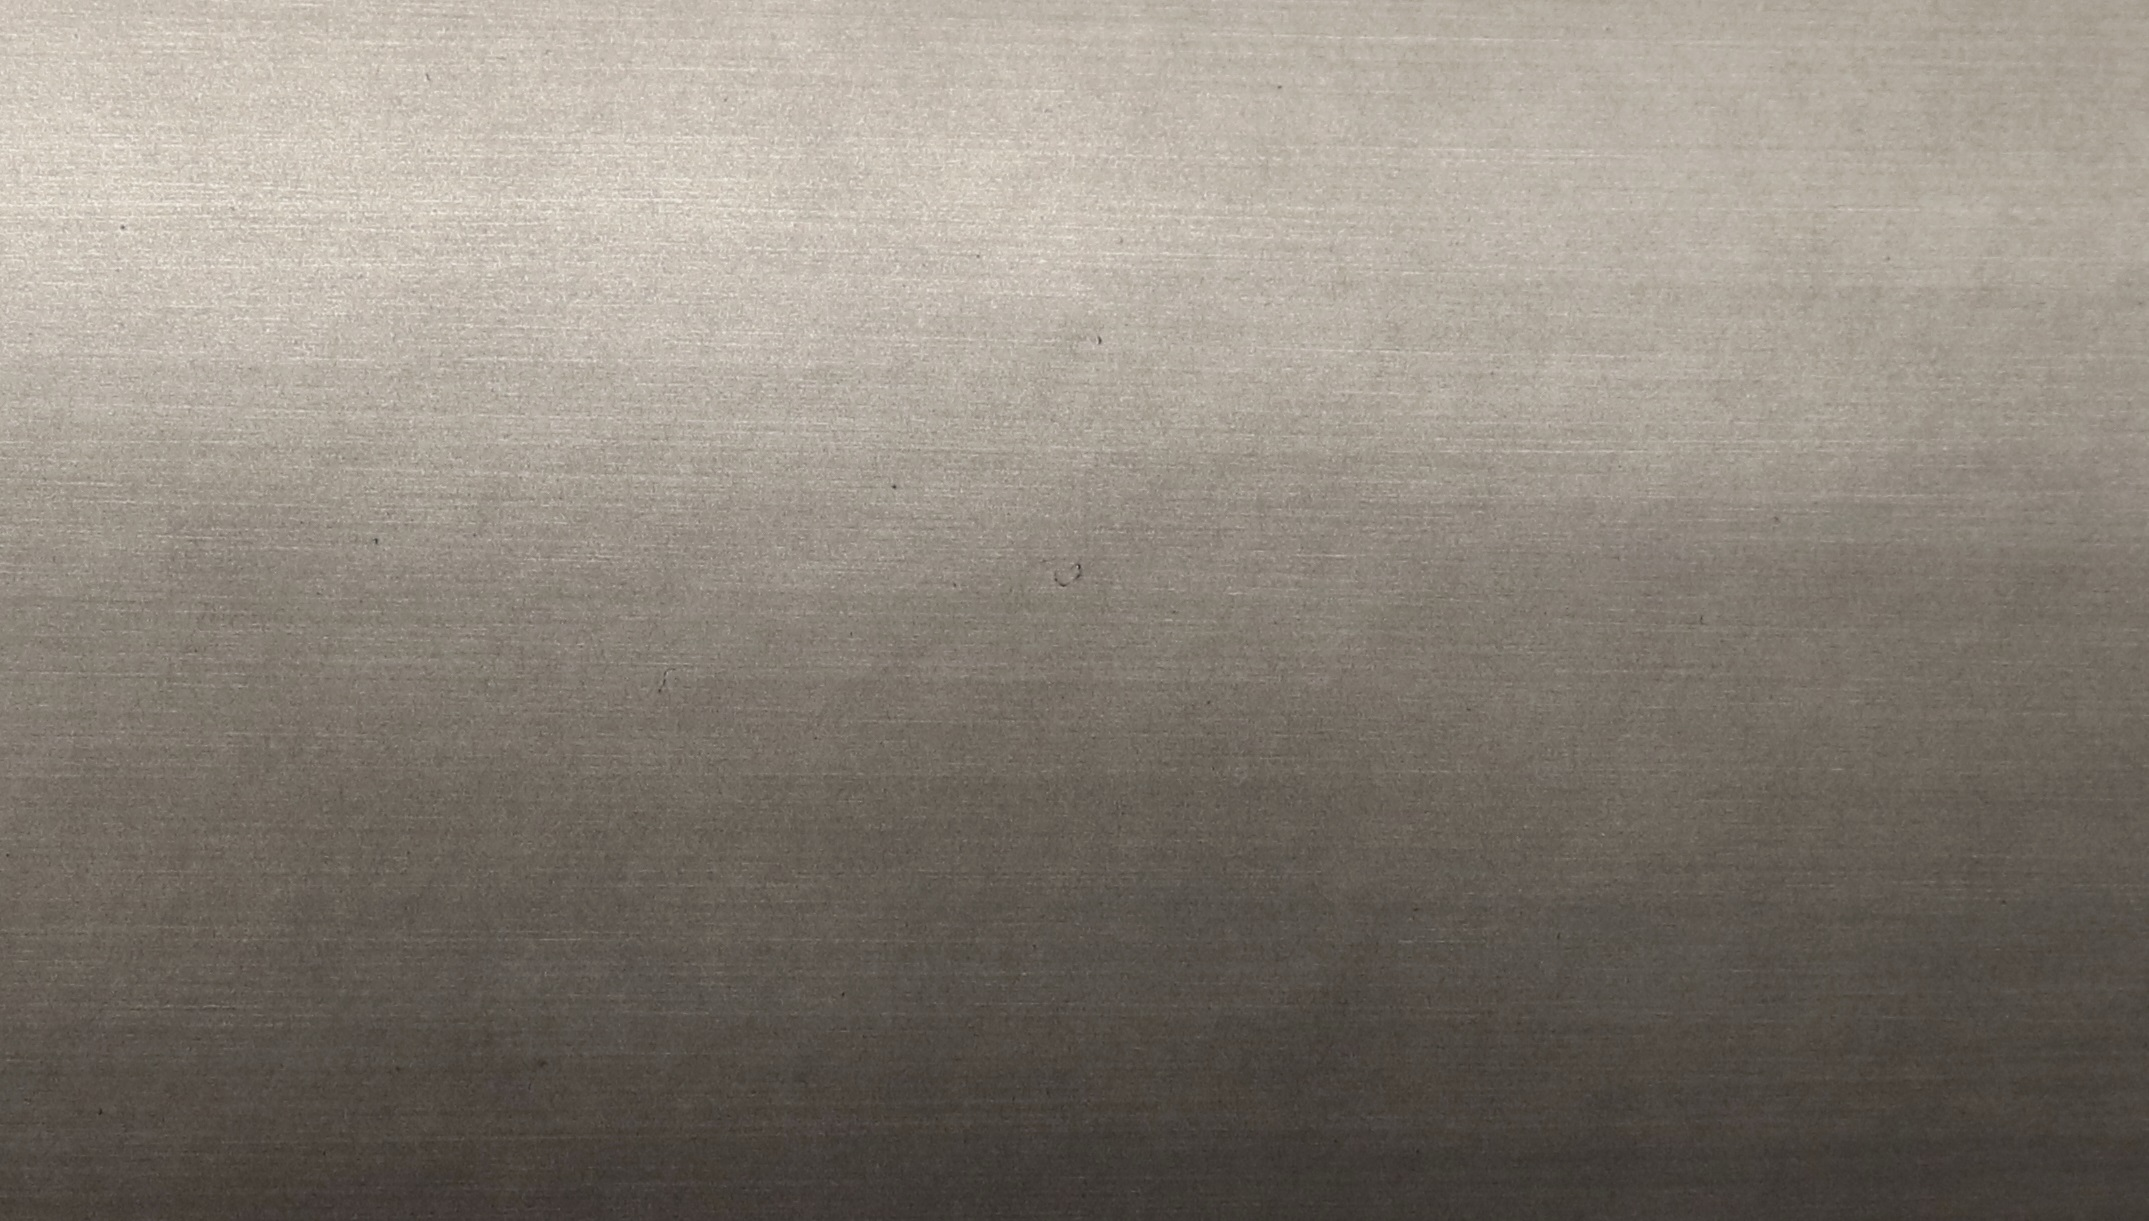 81009C-anodized-brushed-metals-effect-paint-1